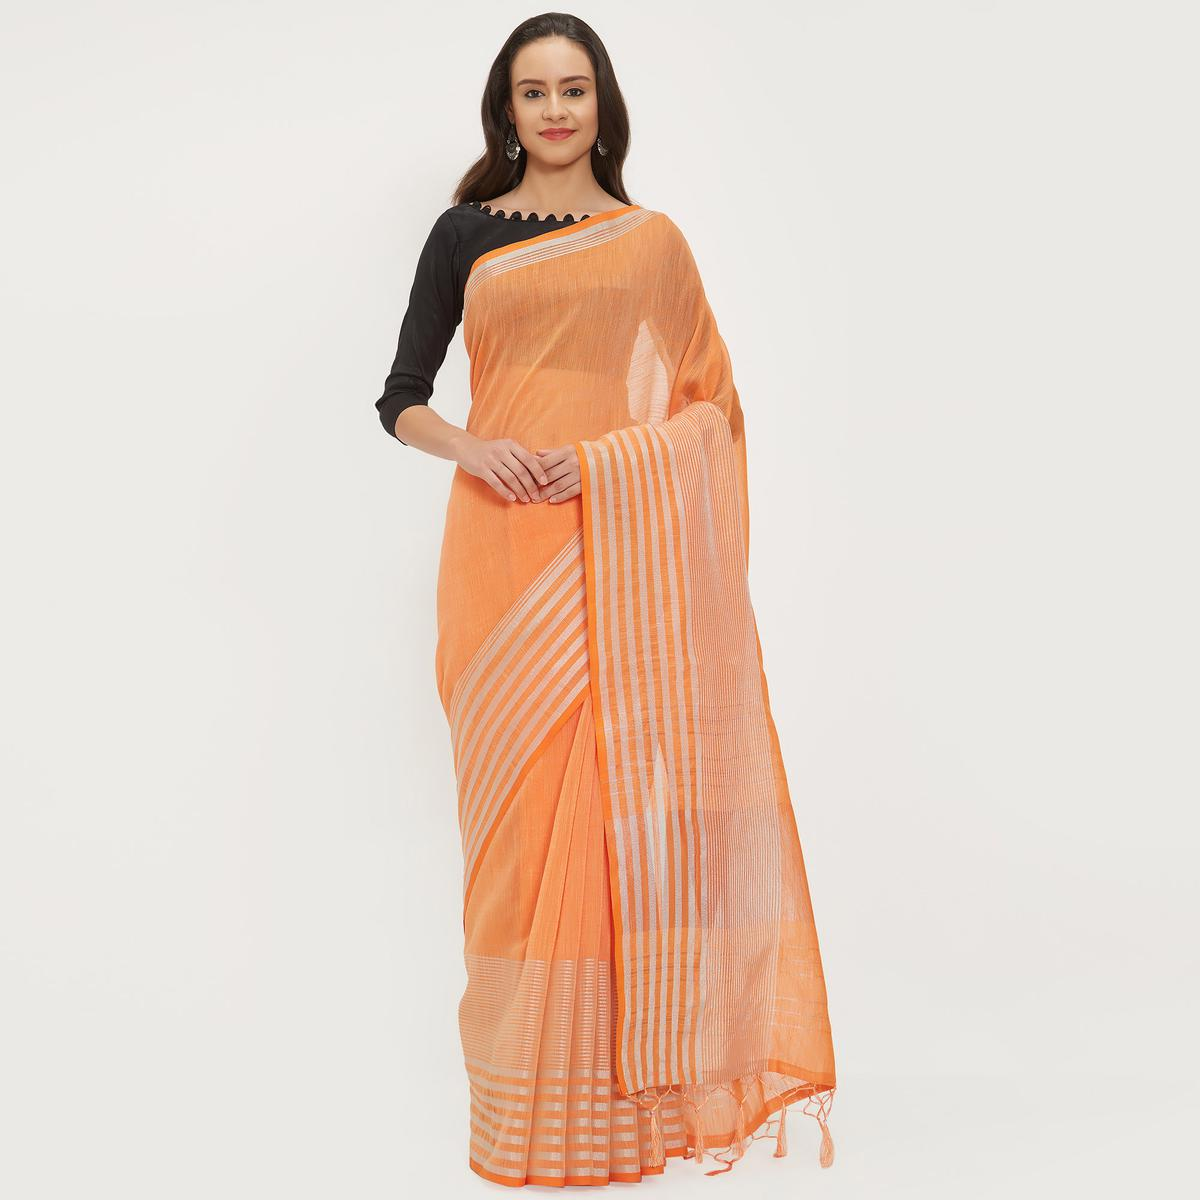 Mesmeric Light Orange Colored Casual Wear Linen Saree With 2 Blouse Pieces